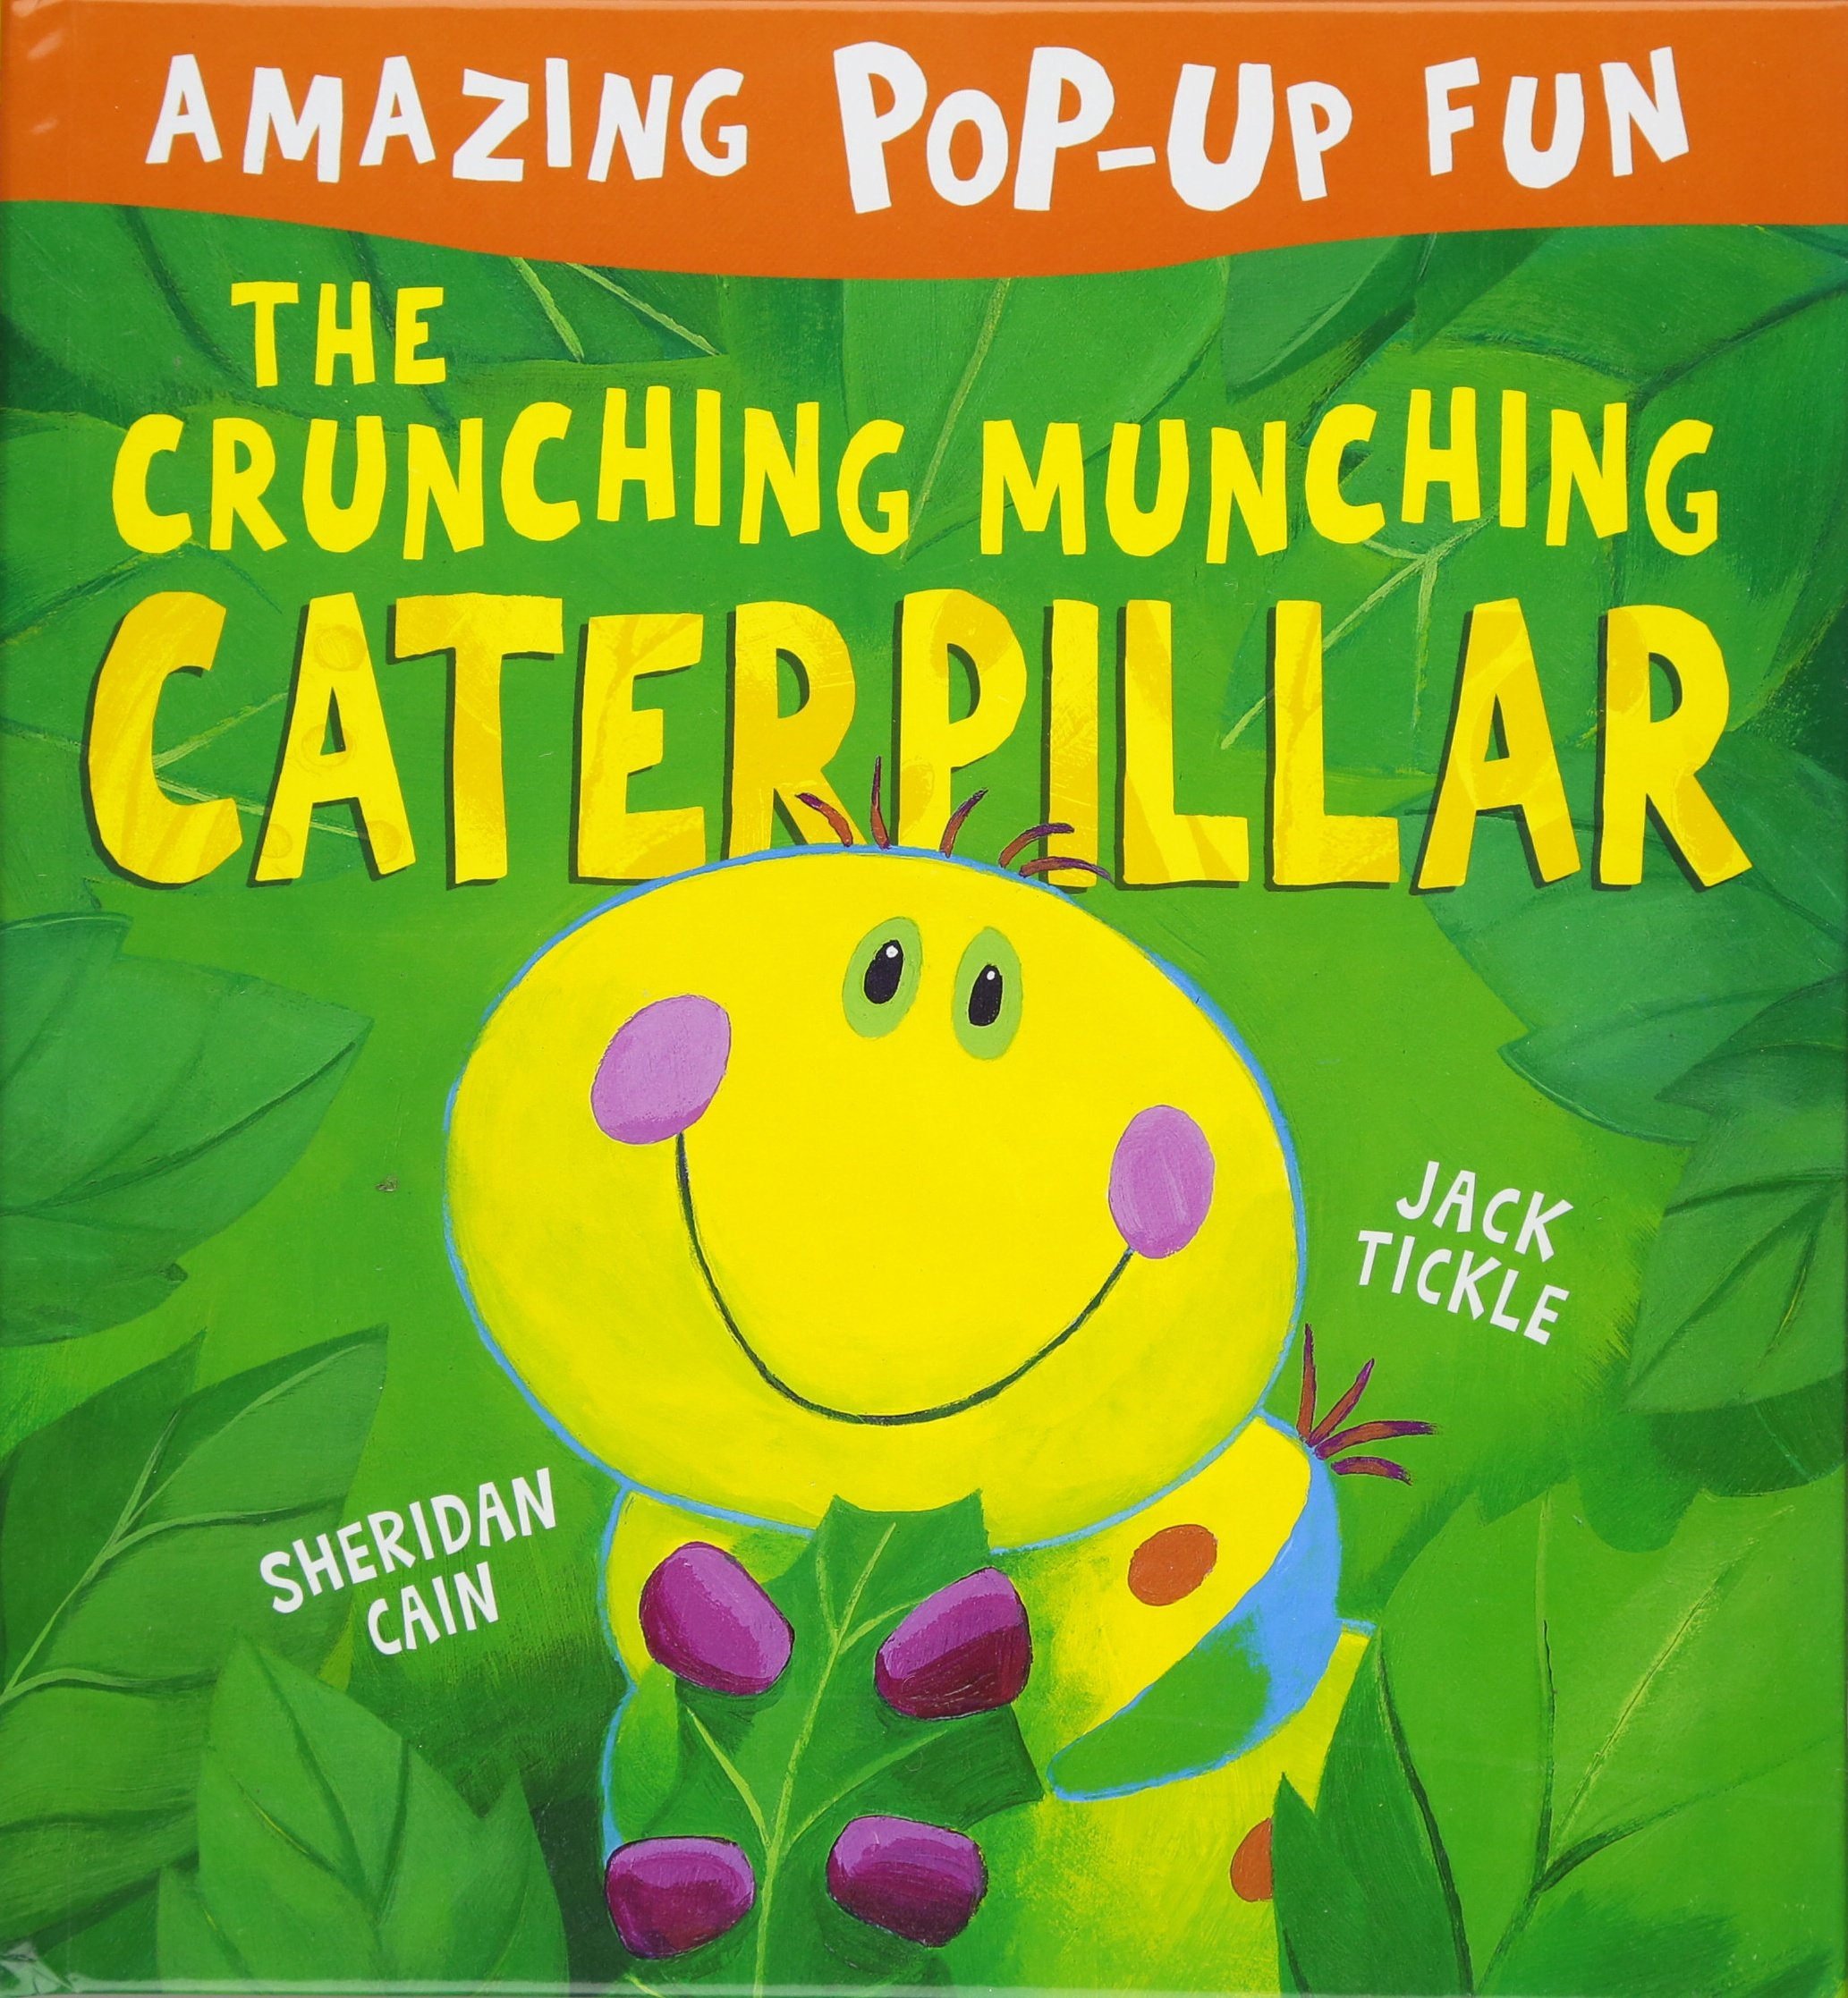 The Crunching Munching Caterpillar PDF